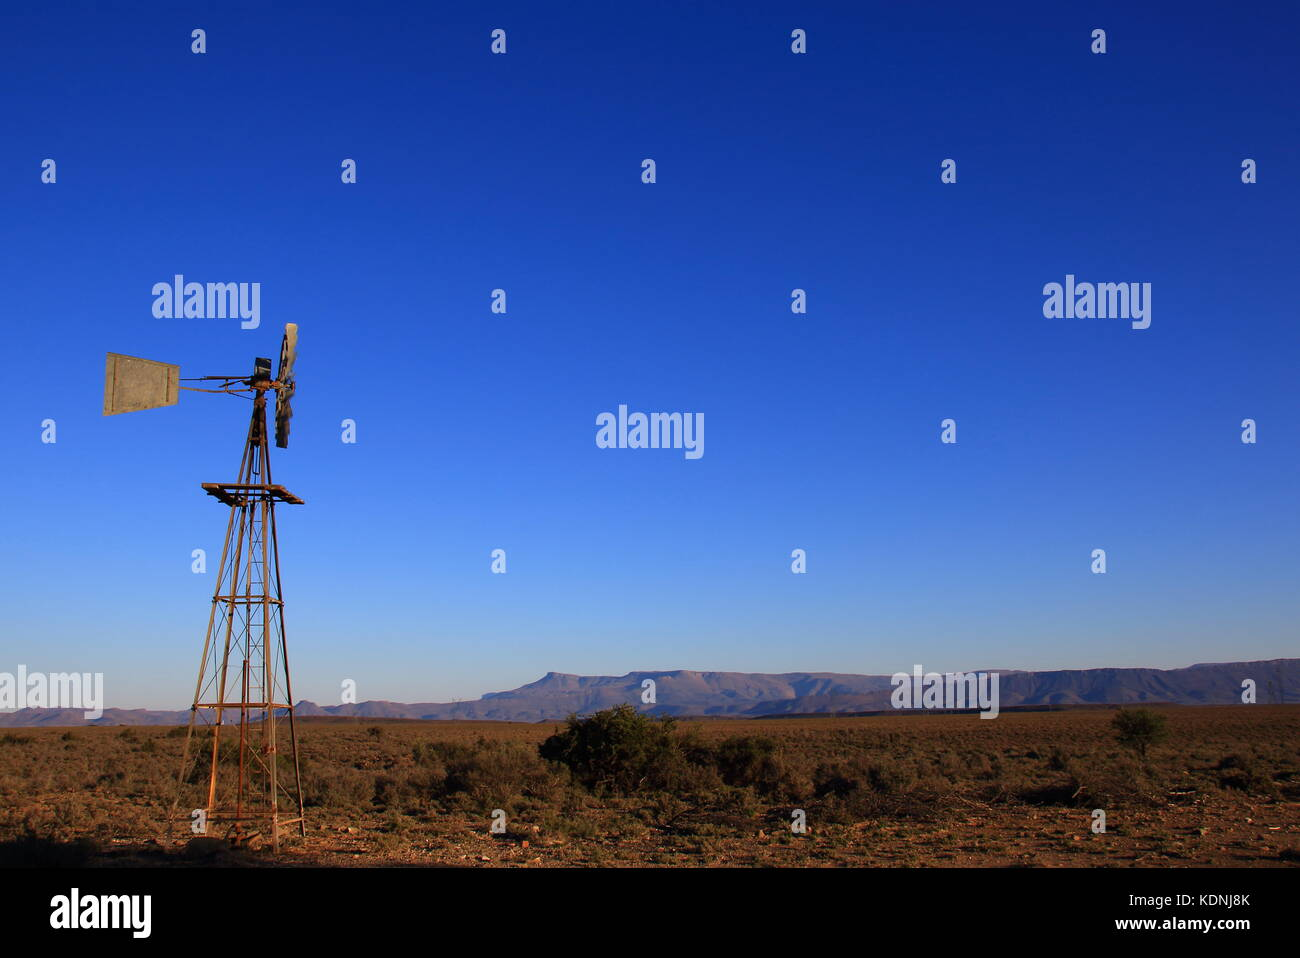 Windmill in a vast open and dry landscape with a clear blue sky in landscape format with copy space - Stock Image